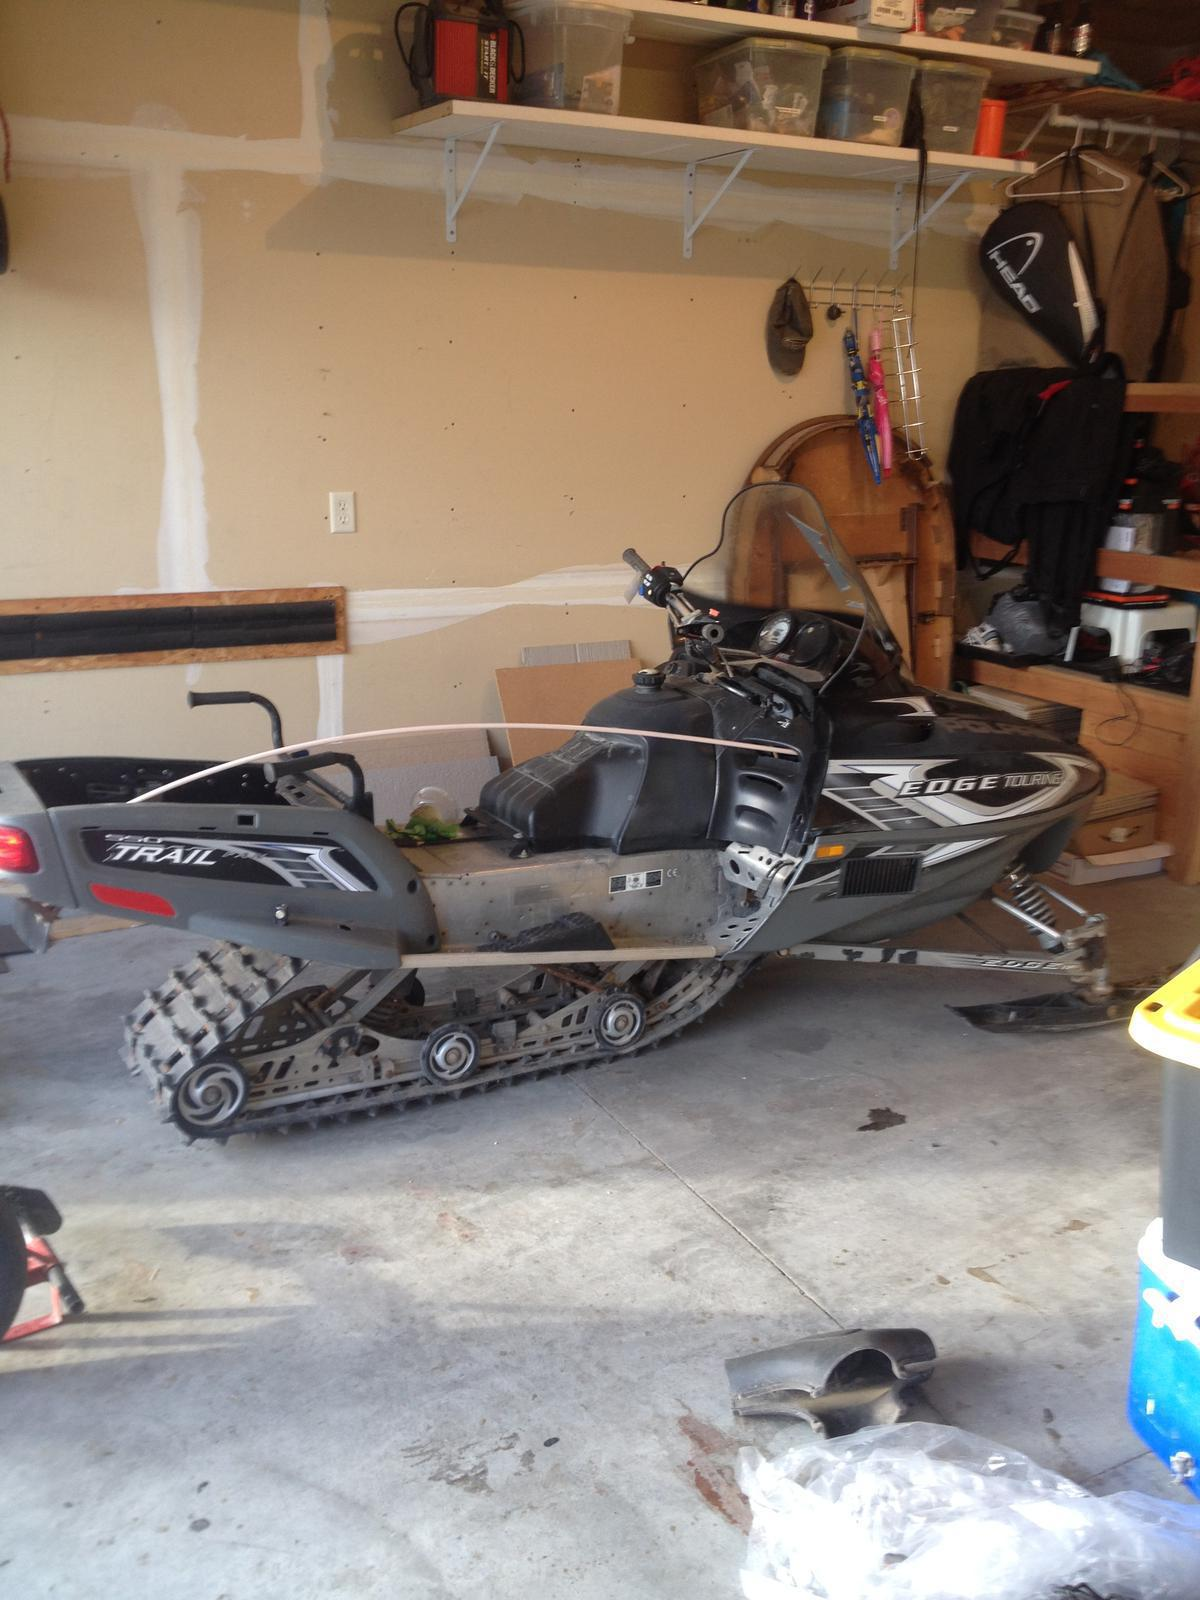 2006 Polaris Used Parts Snowmobile trail touring for sale in